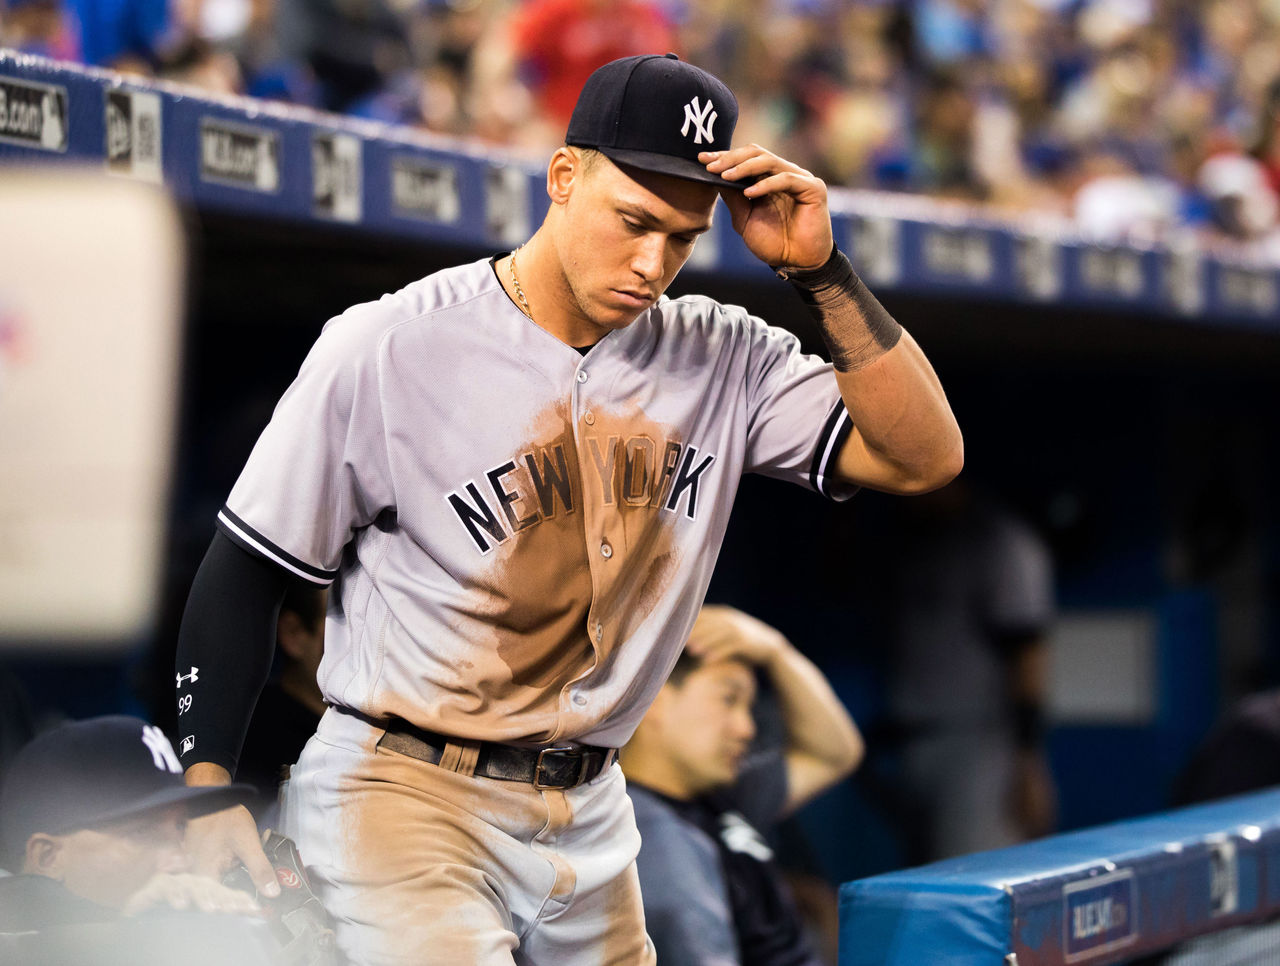 Cropped 2017 06 04t204951z 1810694913 nocid rtrmadp 3 mlb new york yankees at toronto blue jays